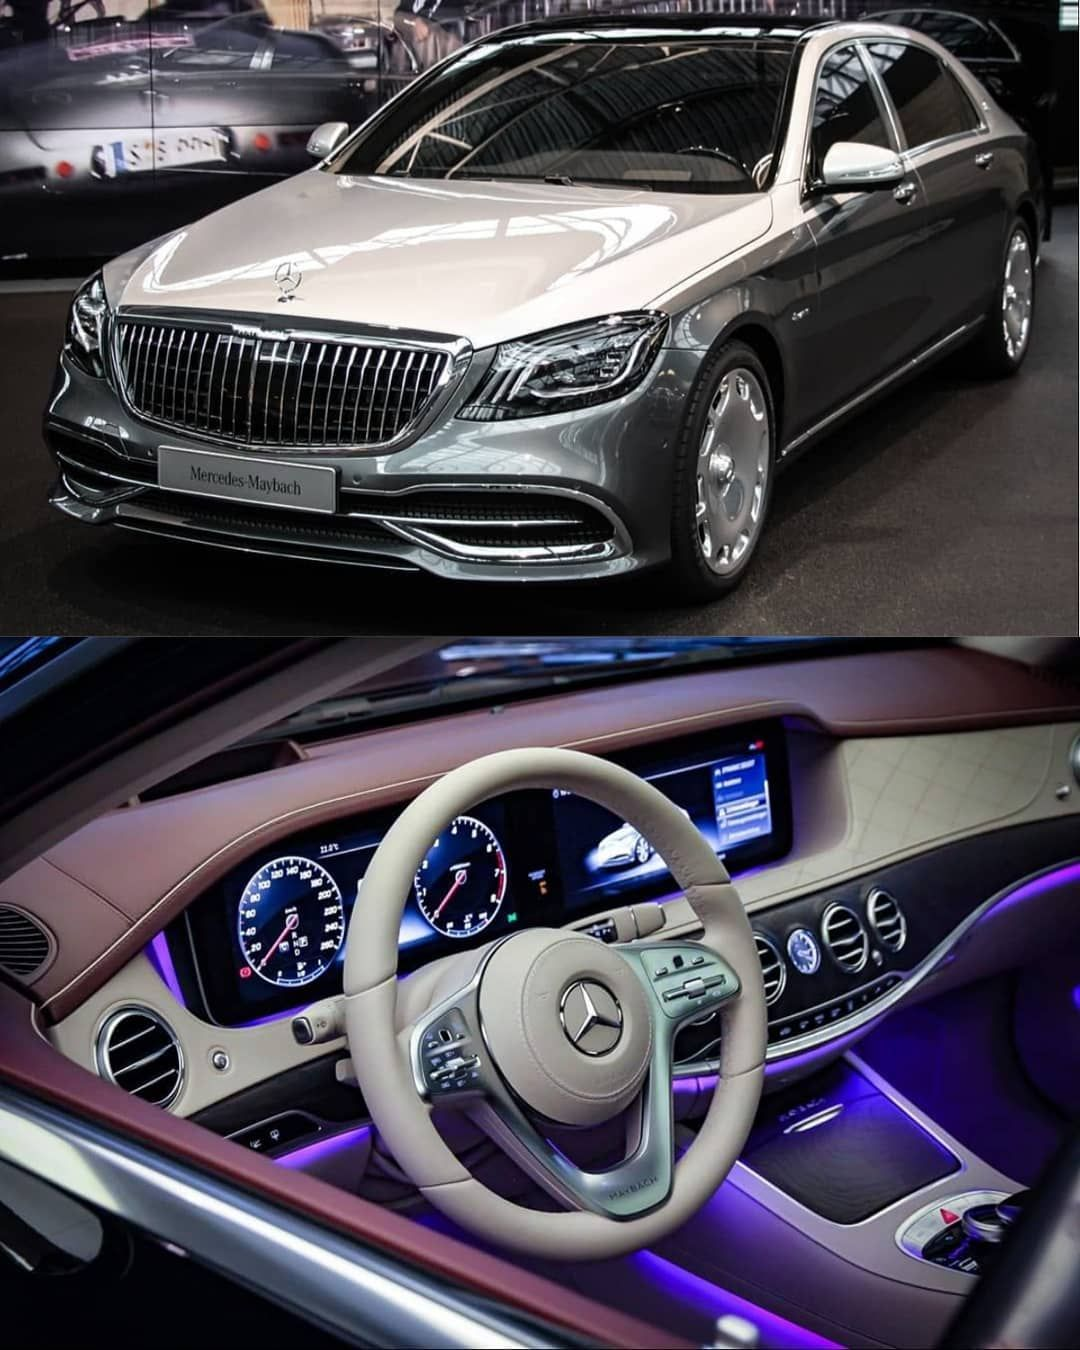 No Doubt The Best Full Size Modern Luxury Sedan In The World Mercedes Maybach S Class Luxury Sedan Mercedes Maybach Mercedes Benz Maybach